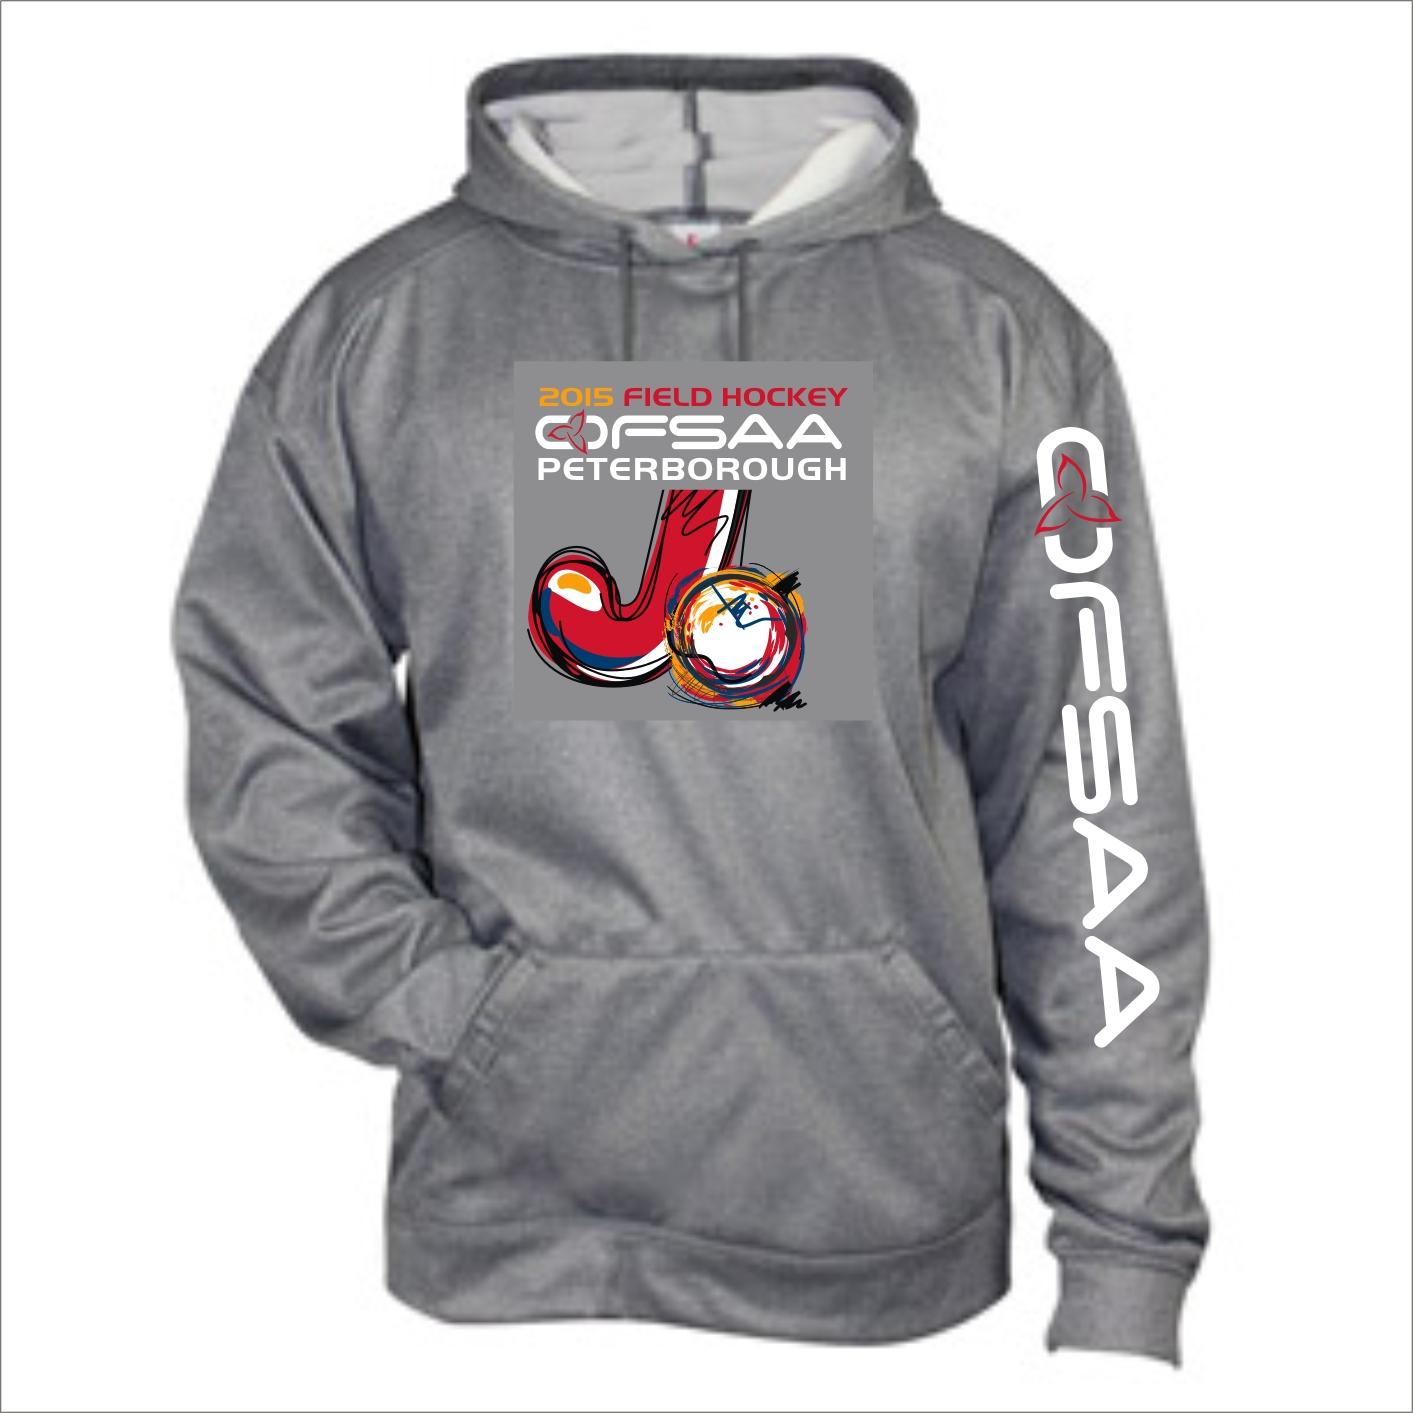 2015 Girls Field Hockey Hoodie single.jpg